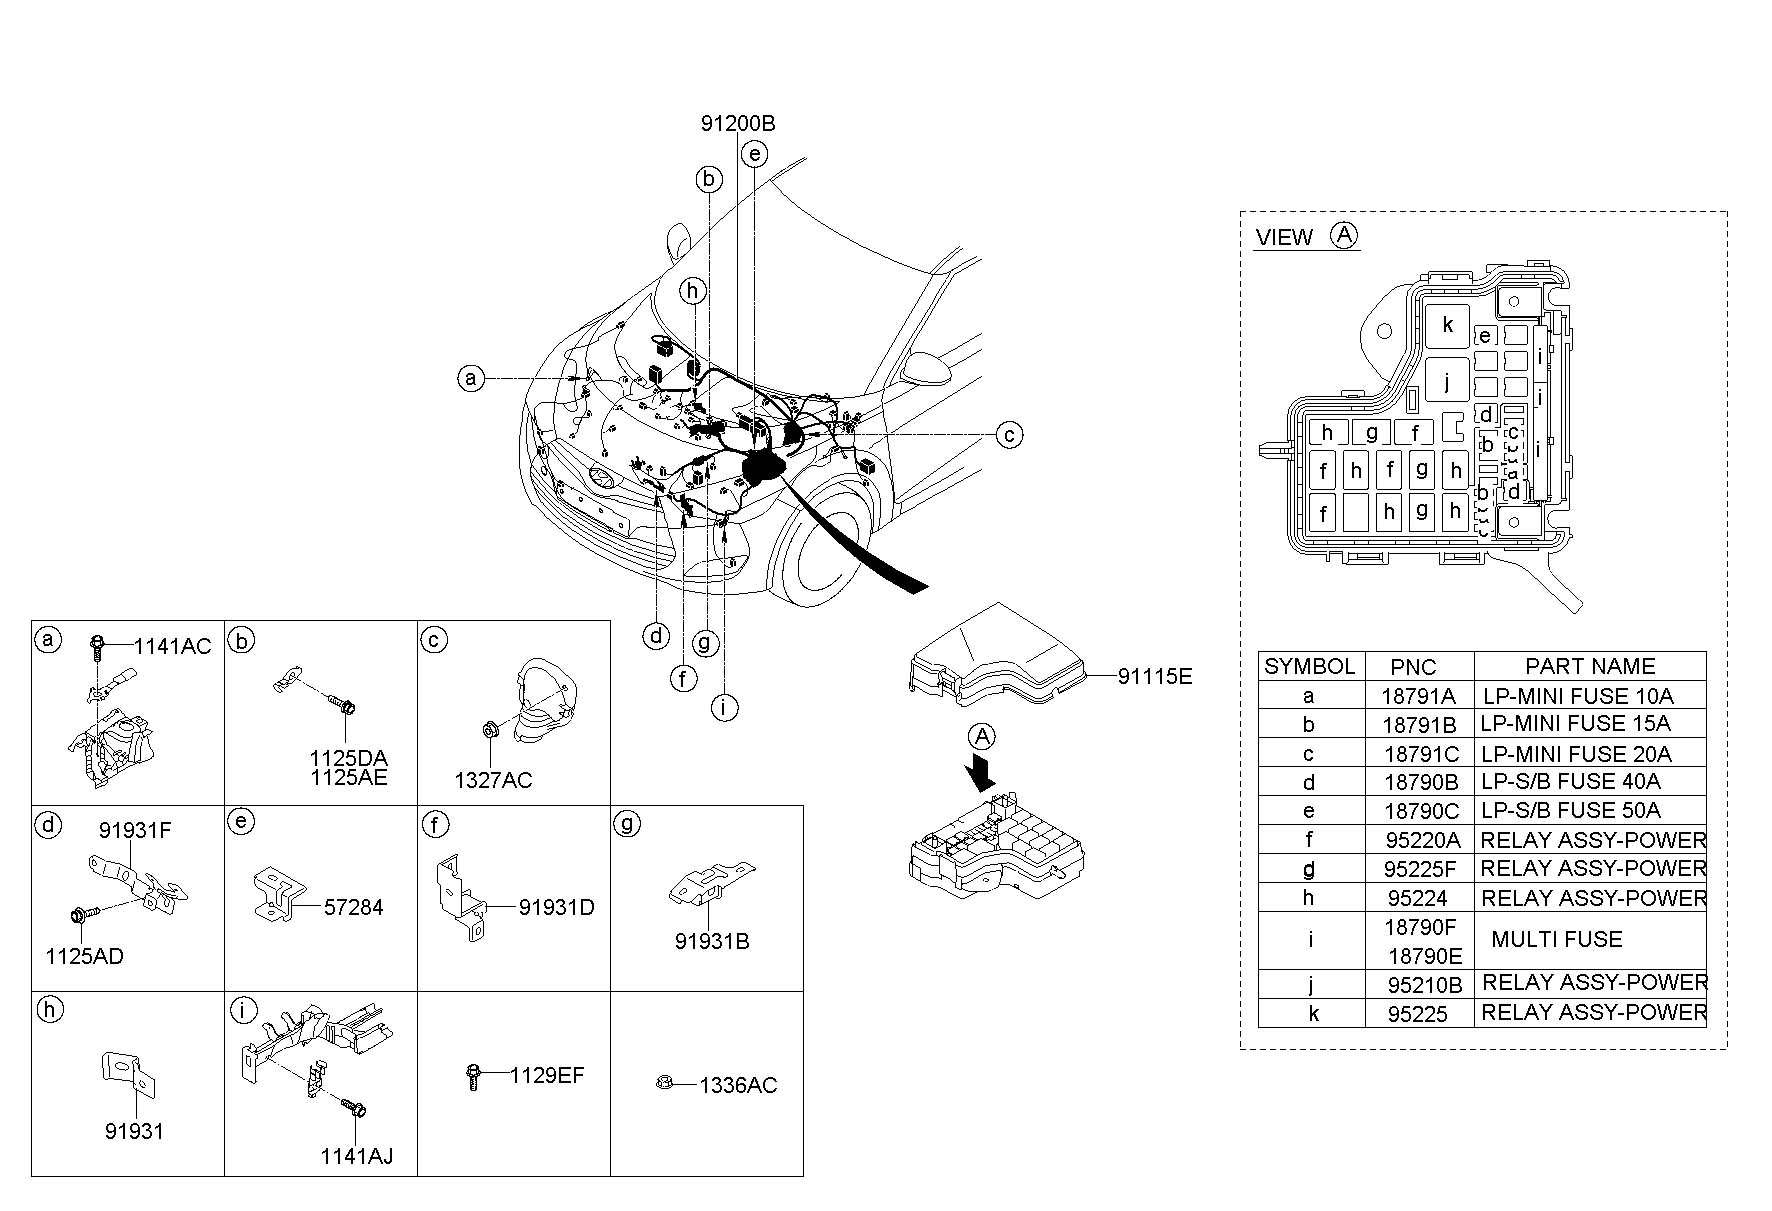 Fuse Box For Hyundai Veloster Wiring Diagrams 2012 Sonata Diagram Relay 2006 Accent